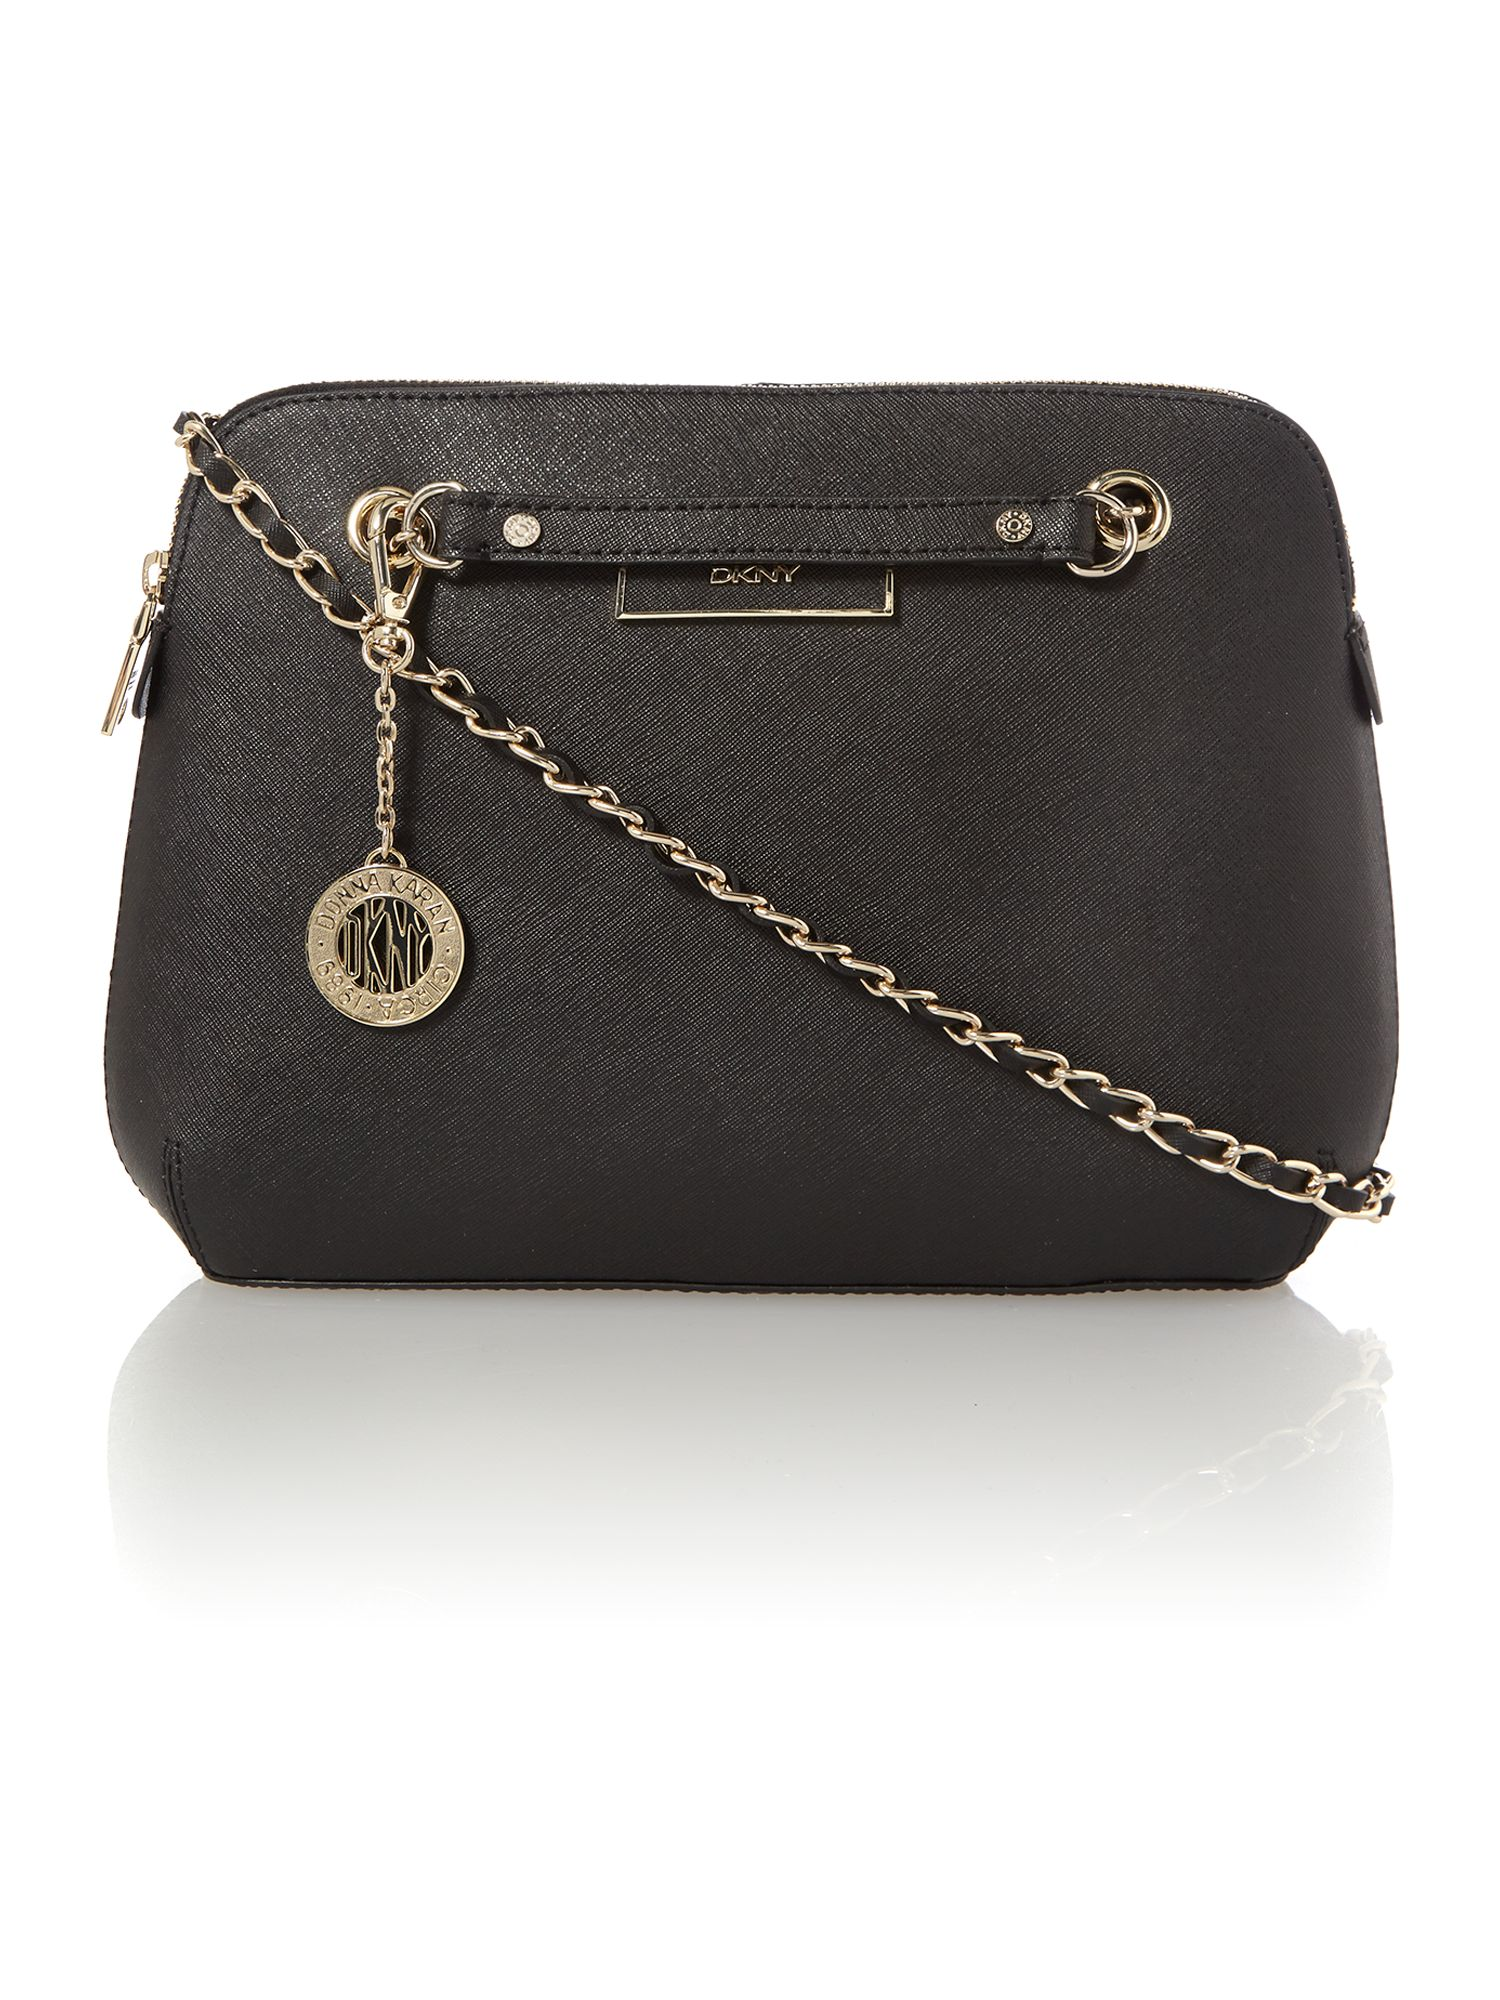 Saffiano black medium crossbody bag